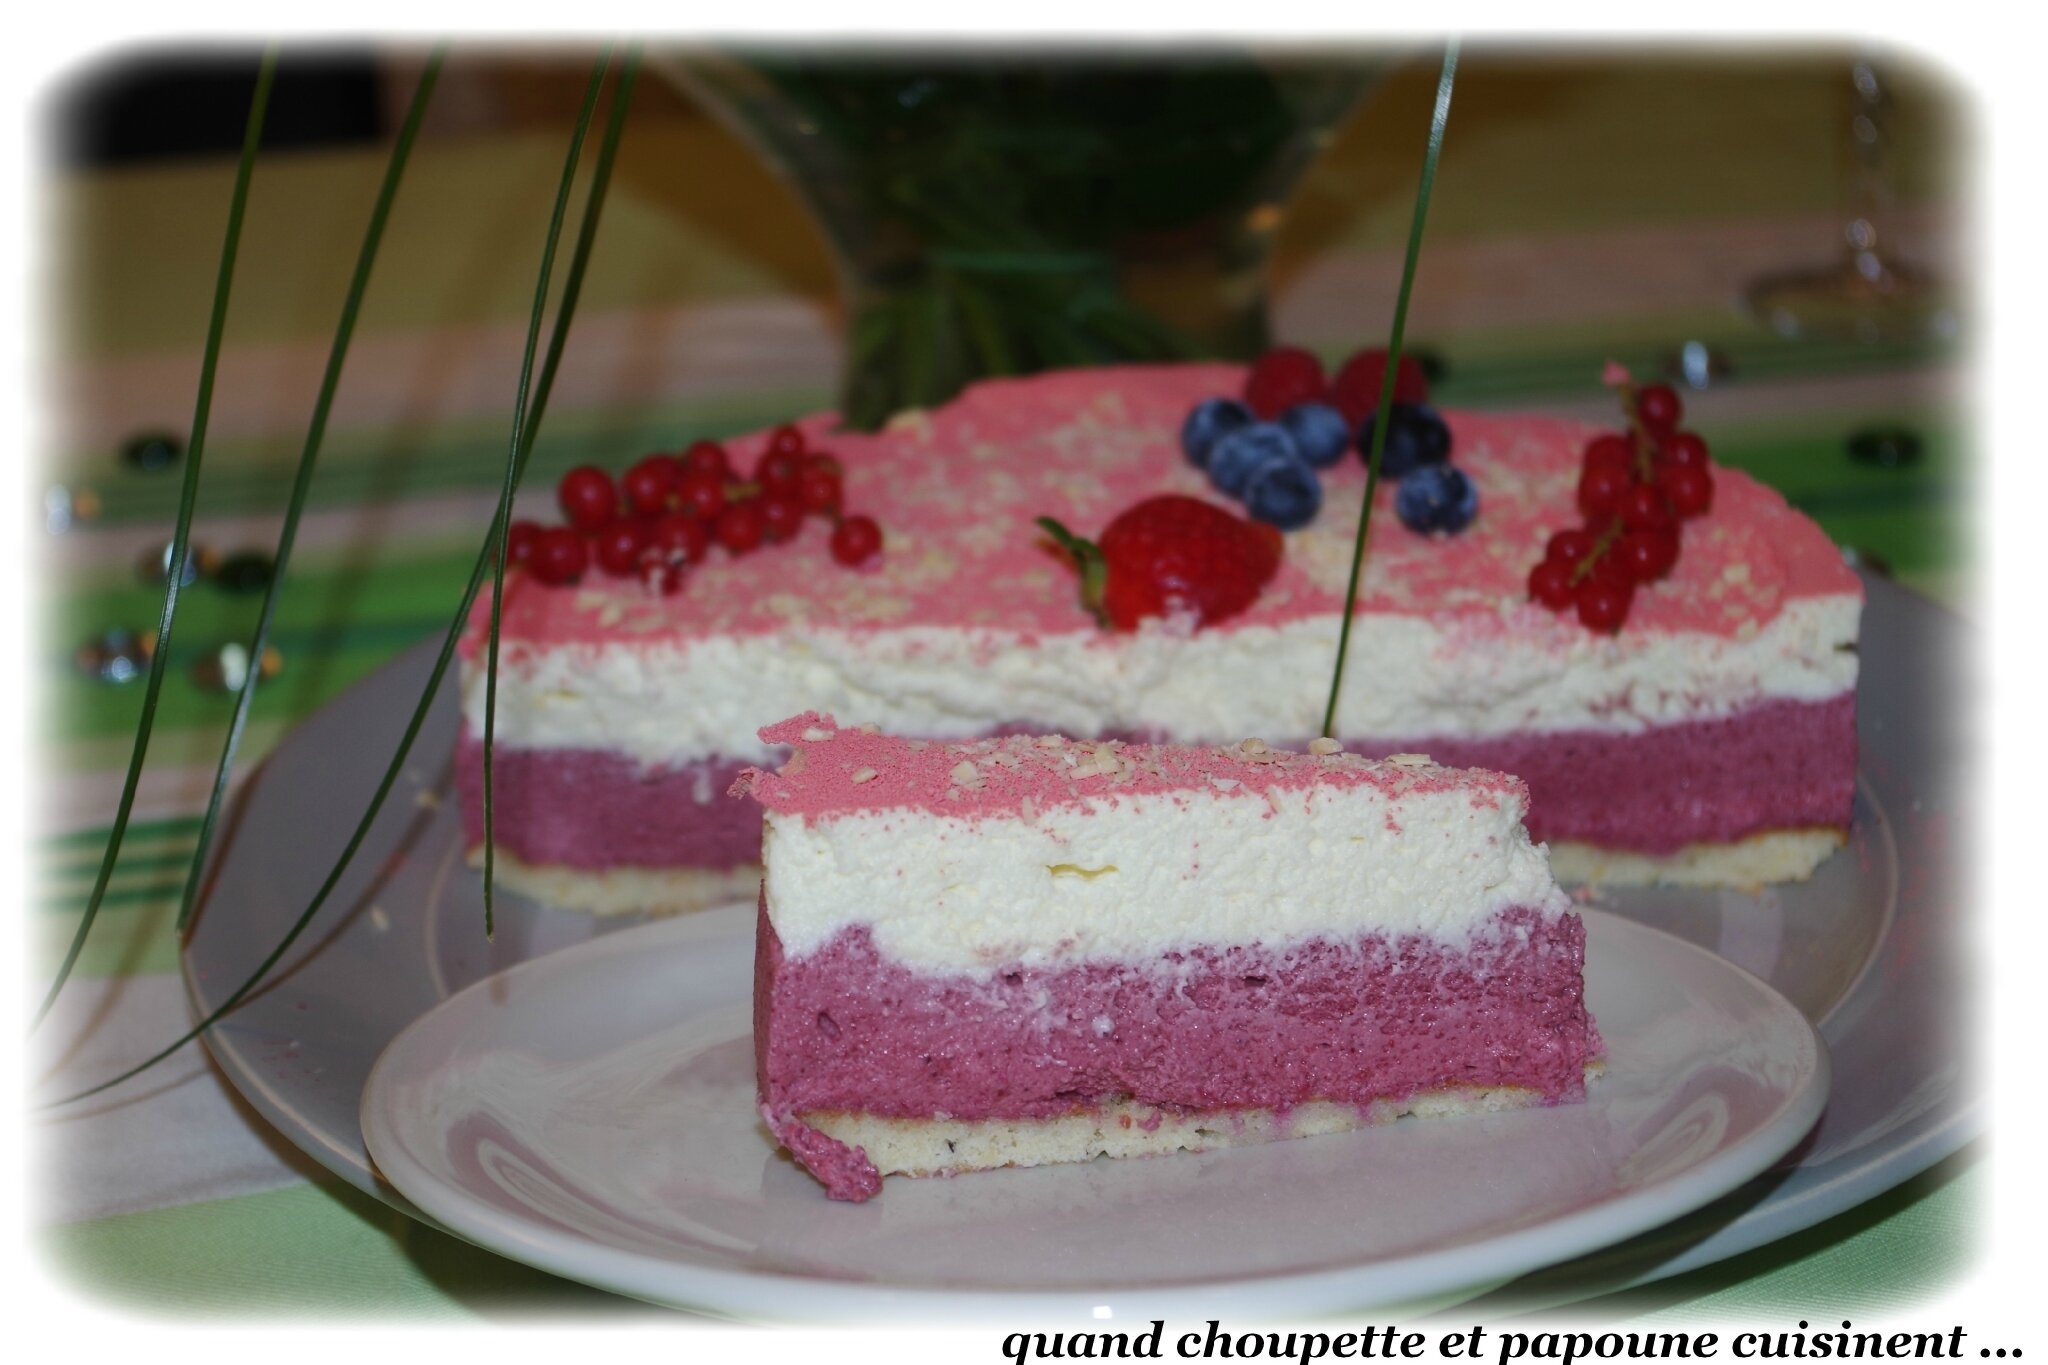 ENTREMET MOUSSE FRUITS ROUGES, MOUSSE CHOCOLAT BLANC SUR UNE DACQUOISE AMANDE